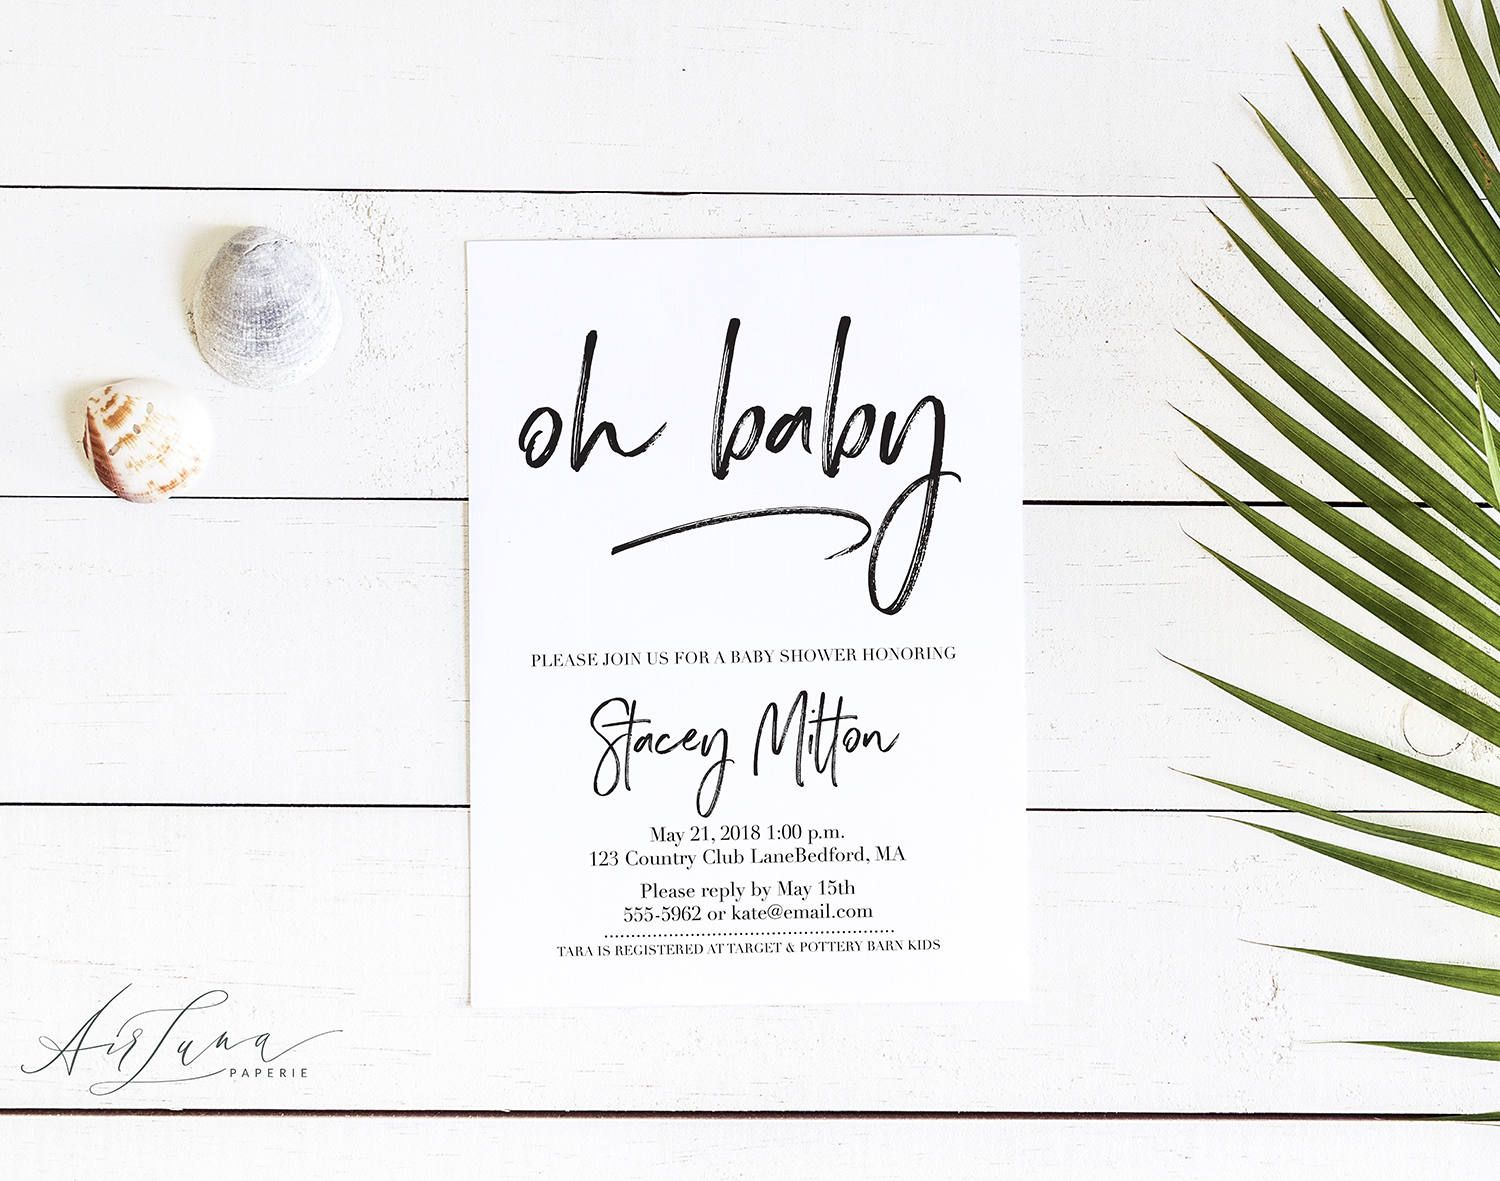 Oh Baby Invitation, Elegant Baby Shower, Simple Baby Shower ...